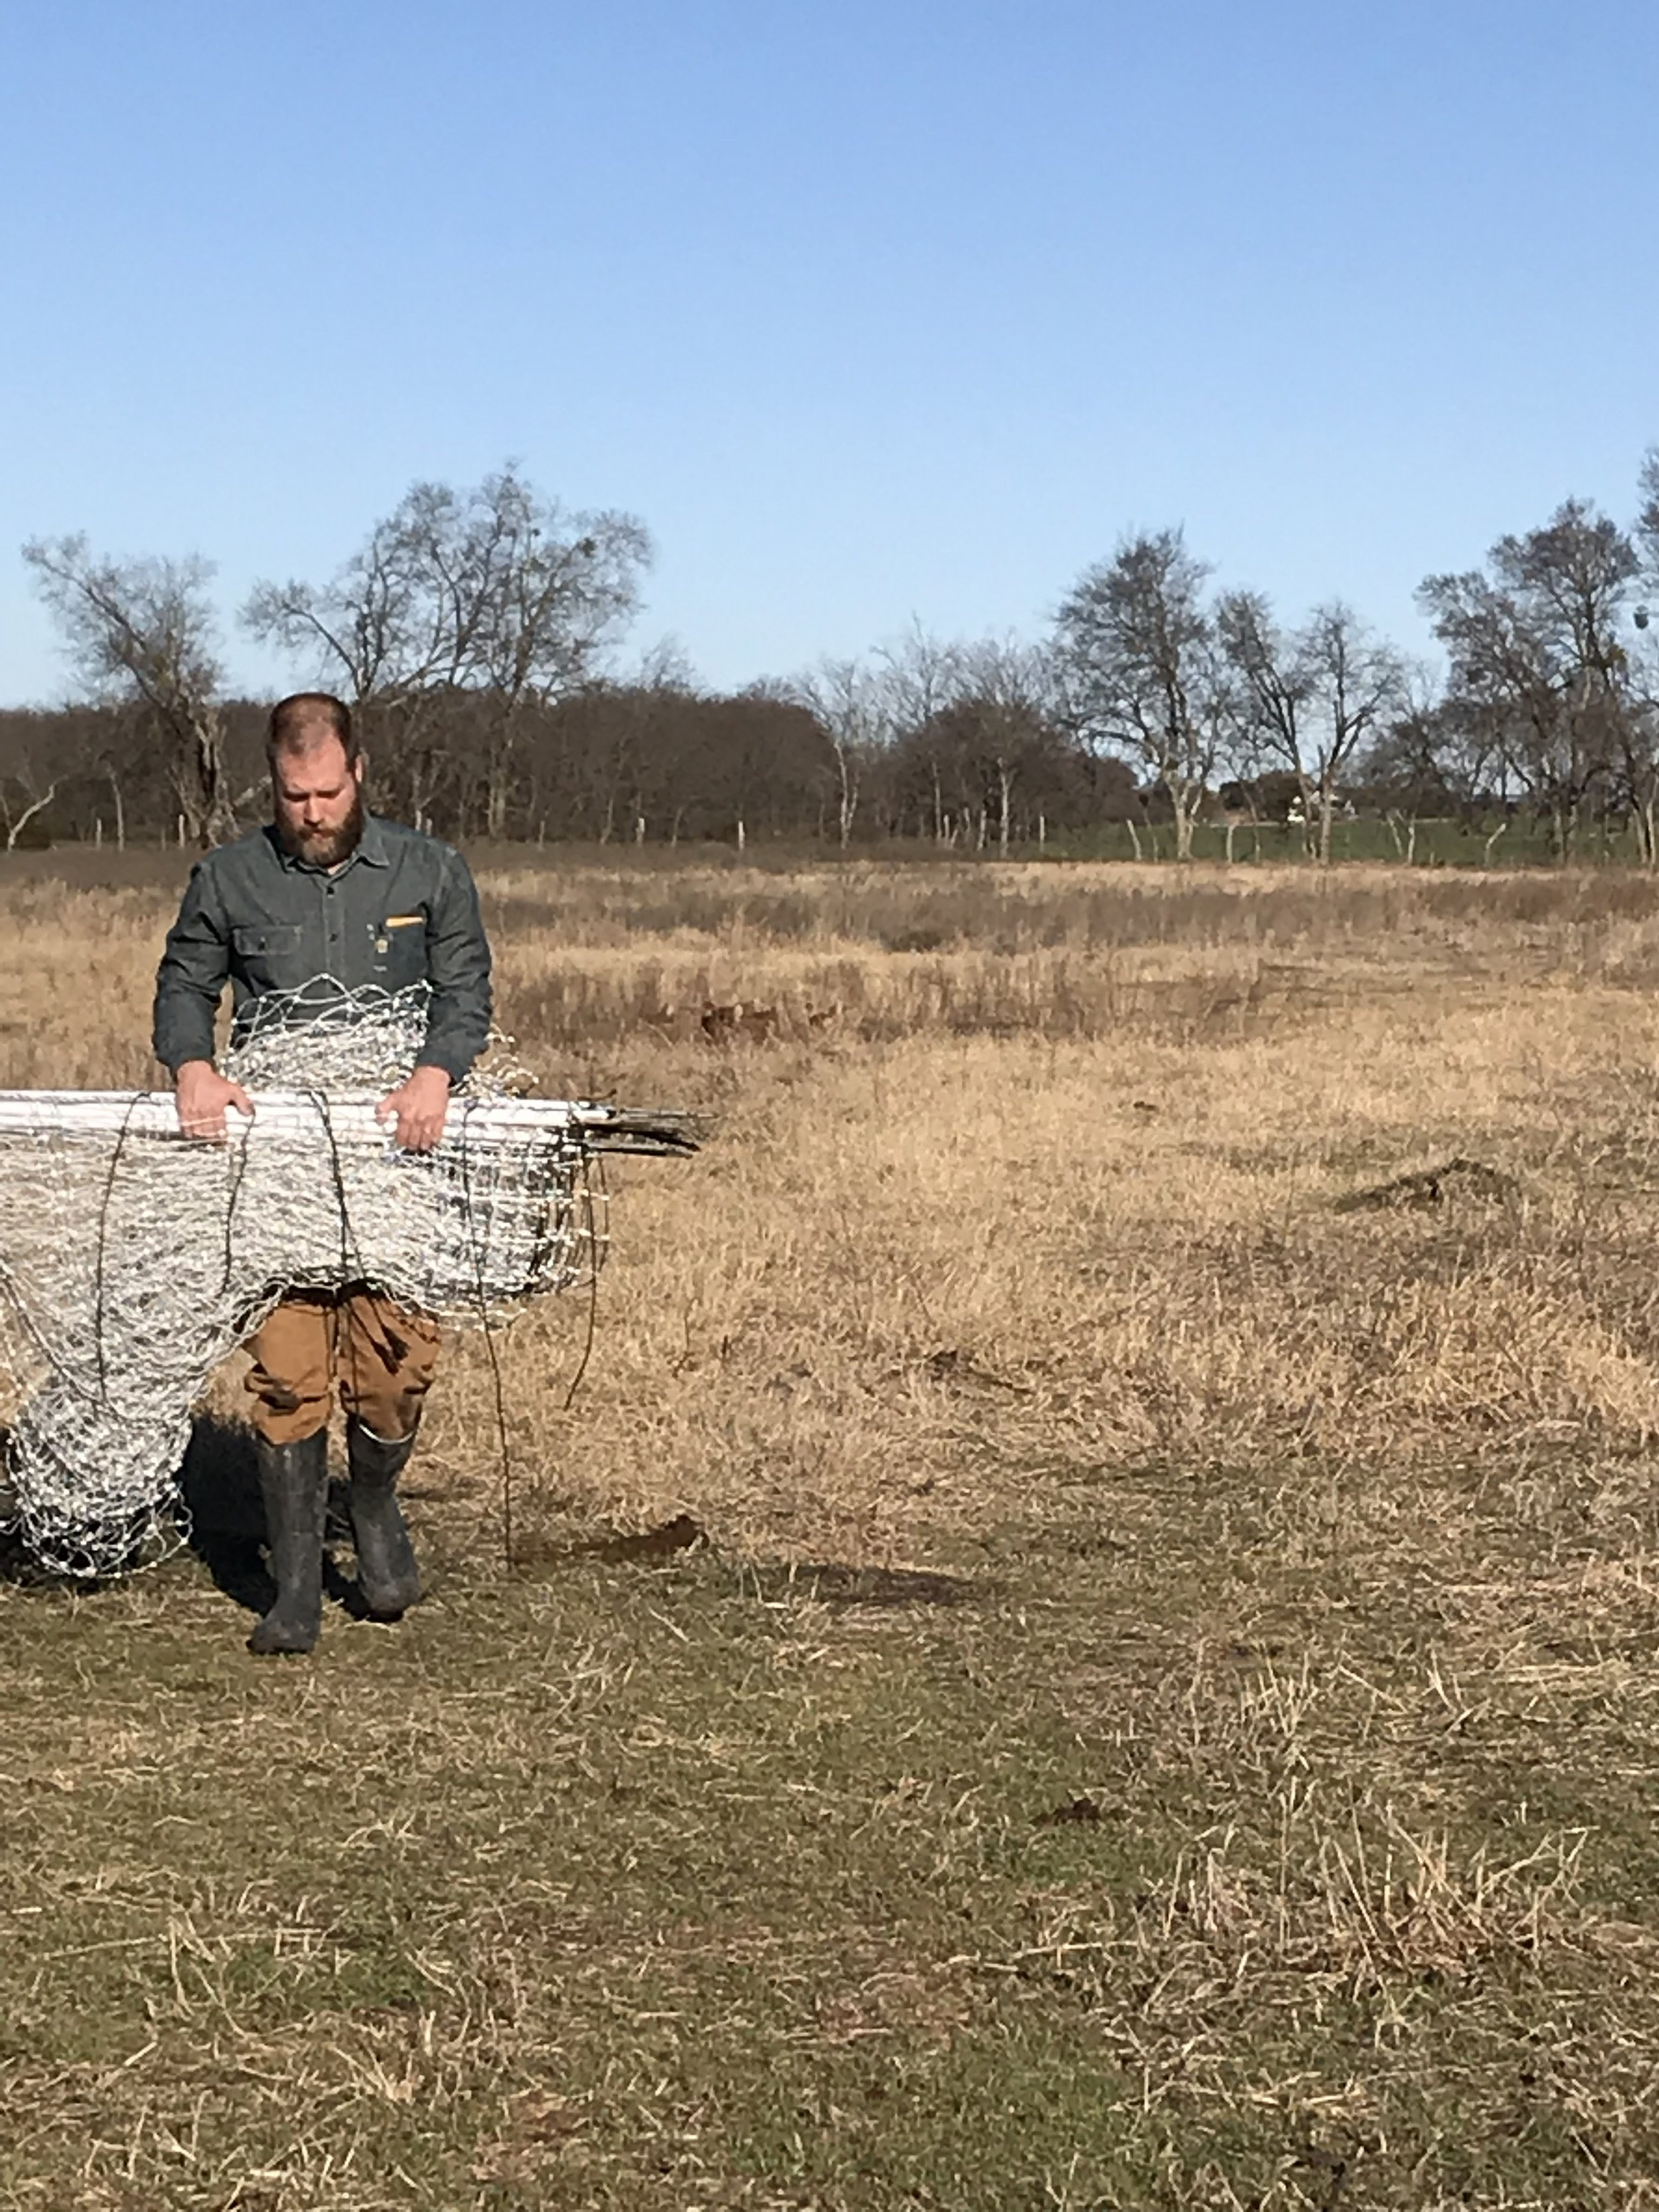 Todd moving the electric netting that protects our laying hens from predators, while still allowing them the freedom to be out on pasture.